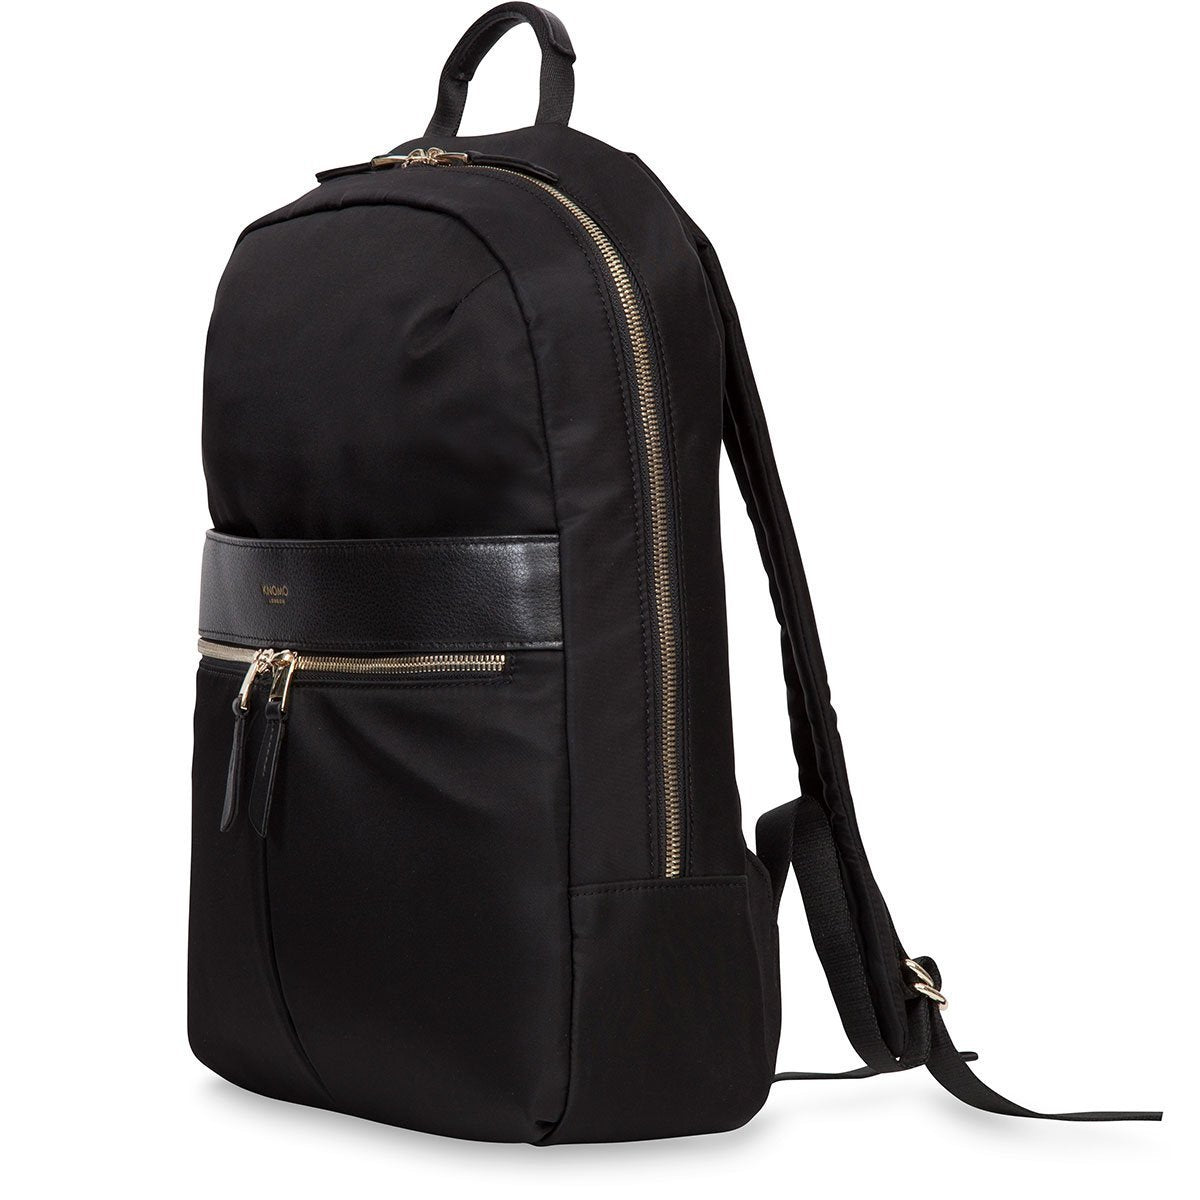 "Beauchamp Women's 14"" Laptop Backpack - Black 